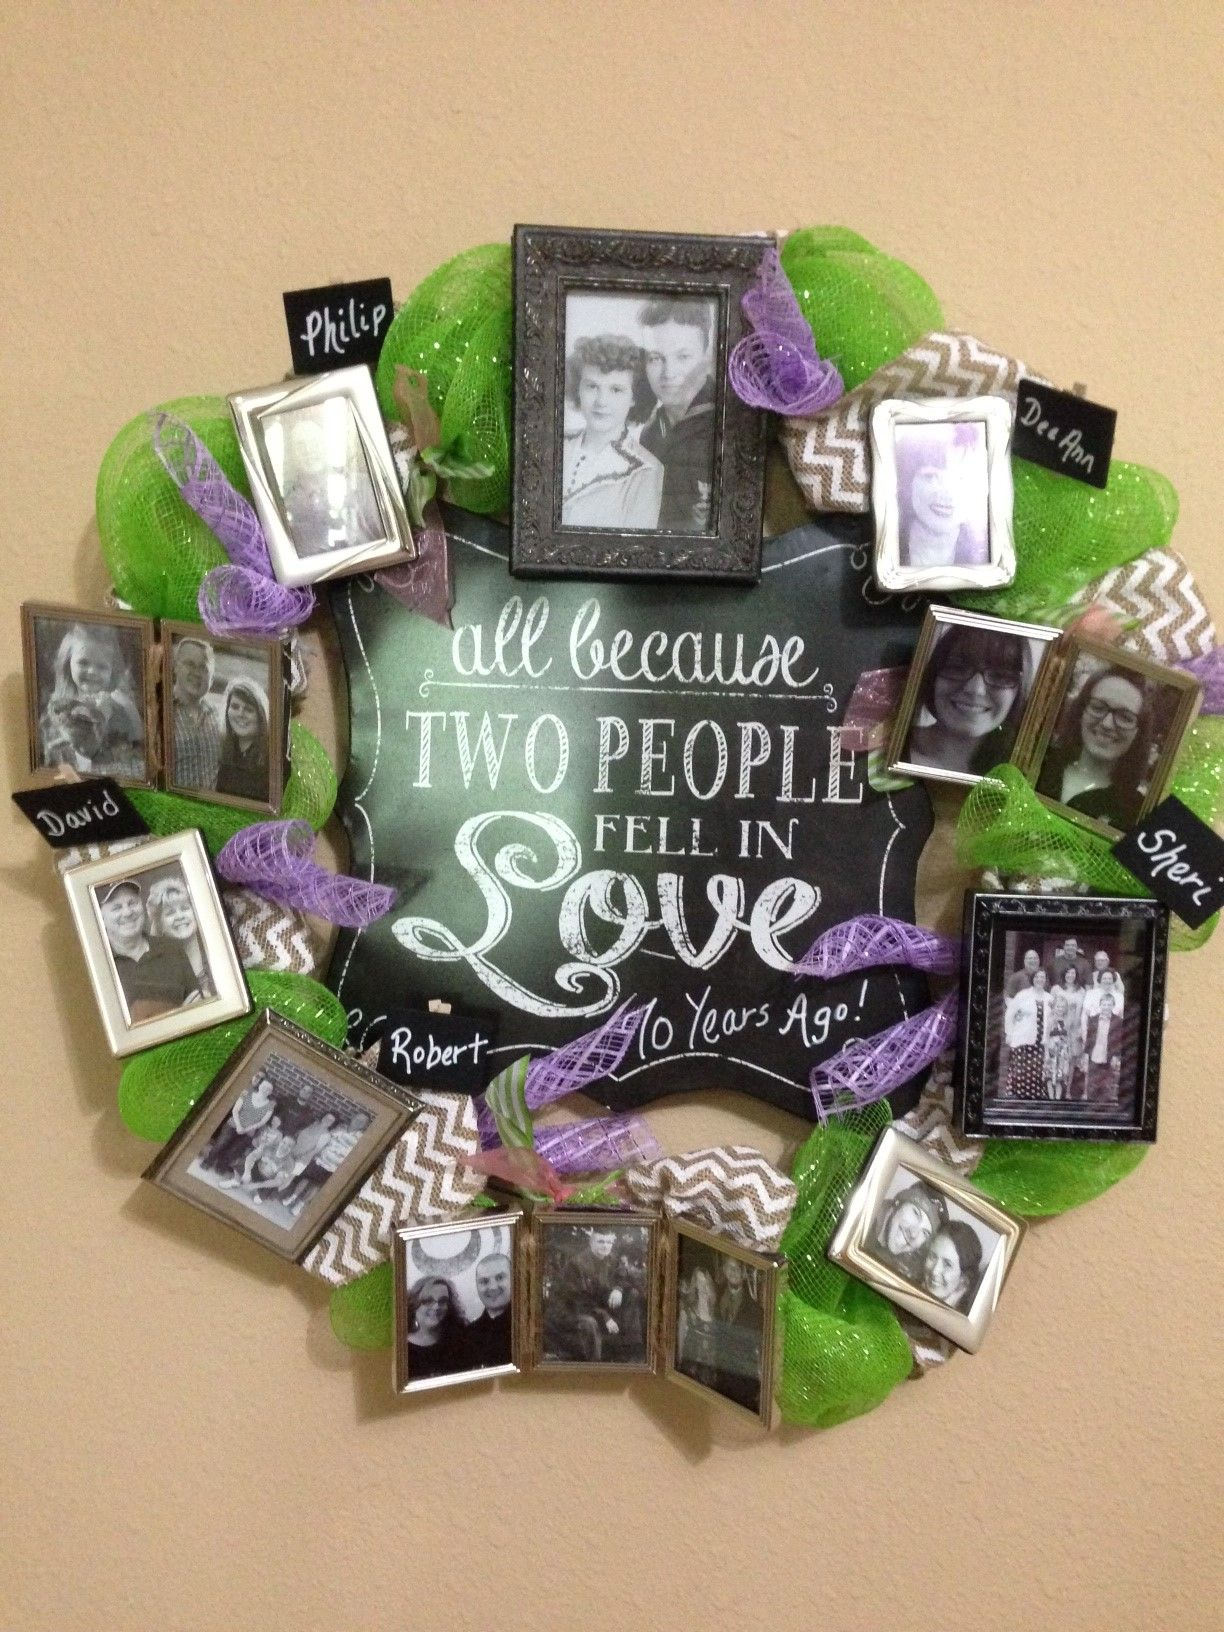 A wreath i made for my wonderful second parents 70th